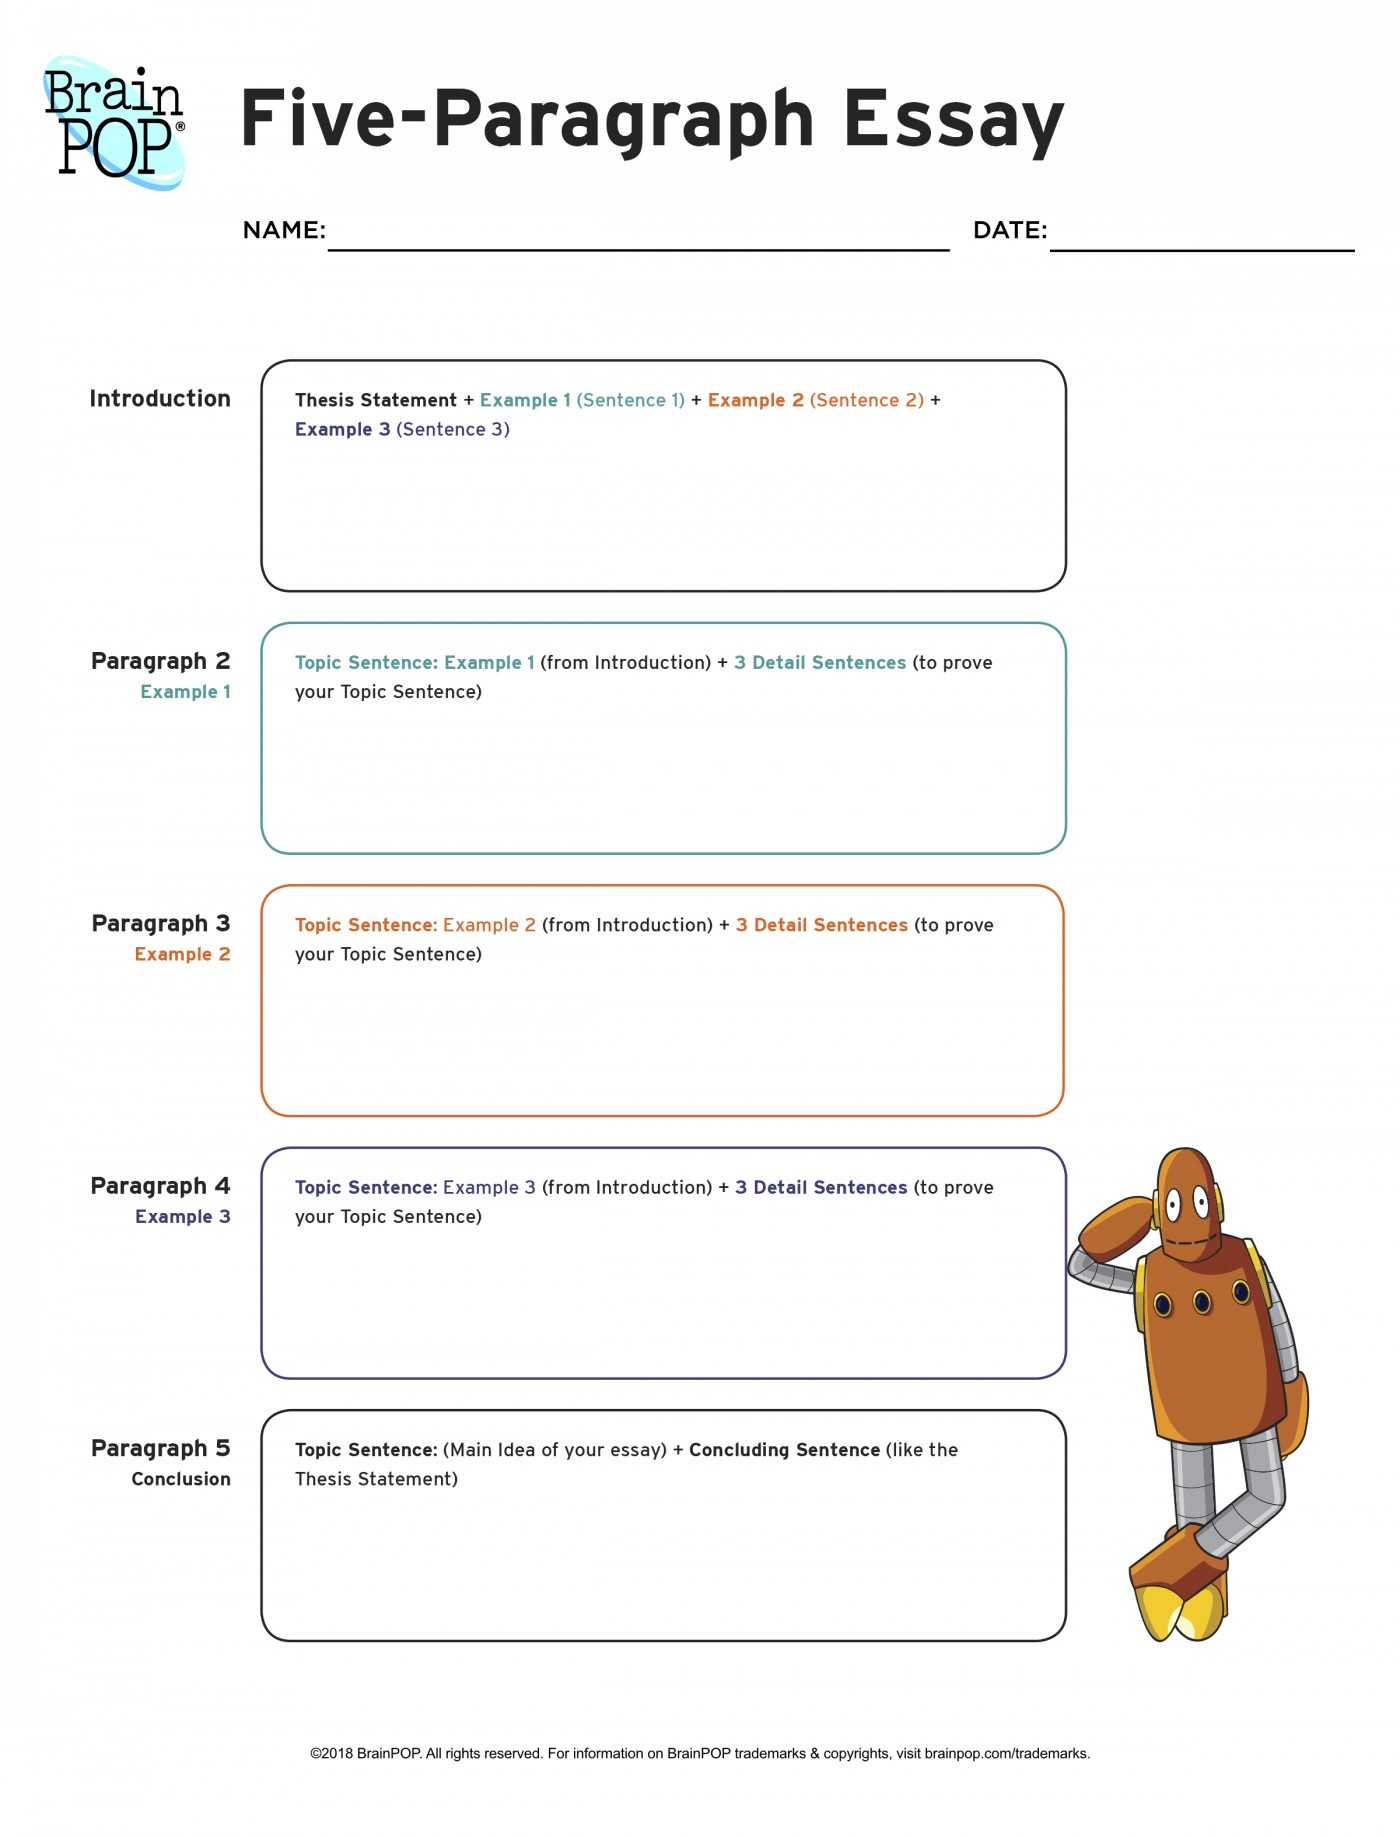 Testable hypothesis examples